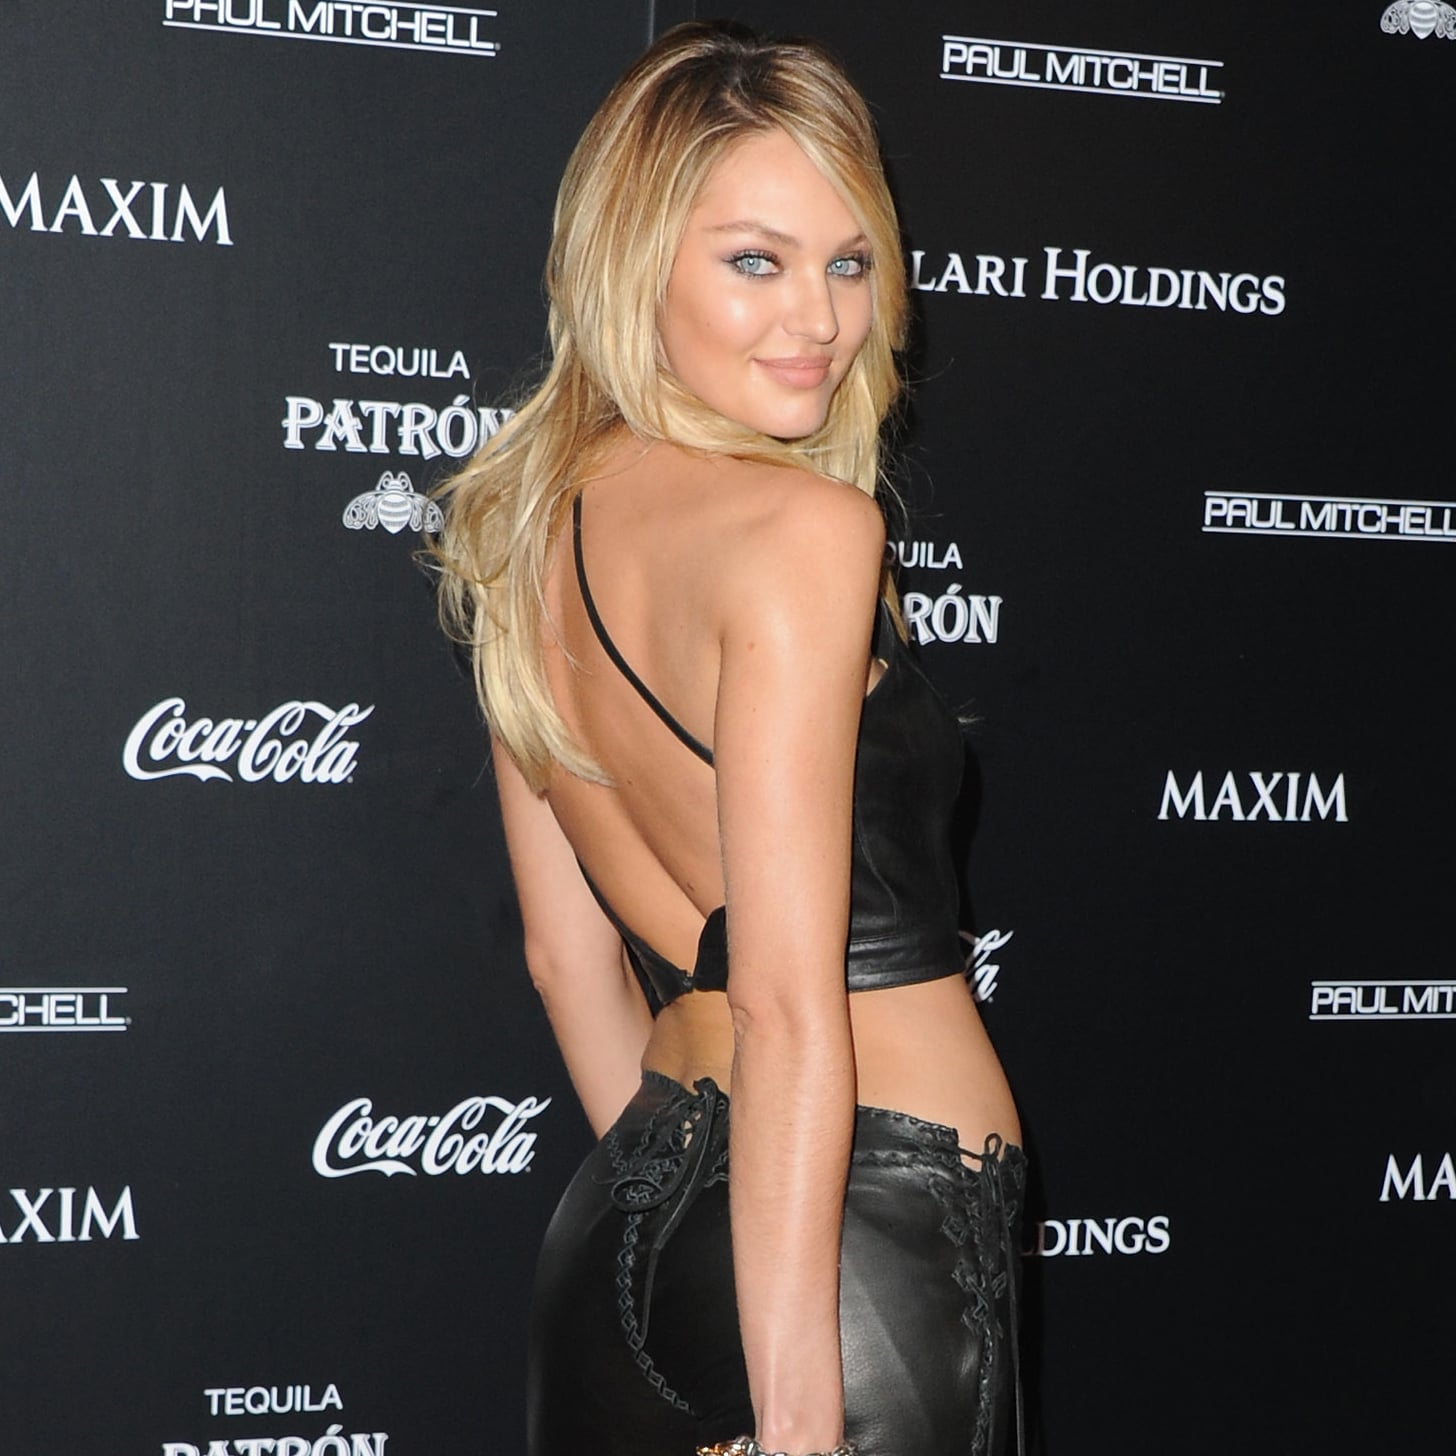 Video Candice Swanepoel naked (37 photo), Topless, Cleavage, Boobs, braless 2019